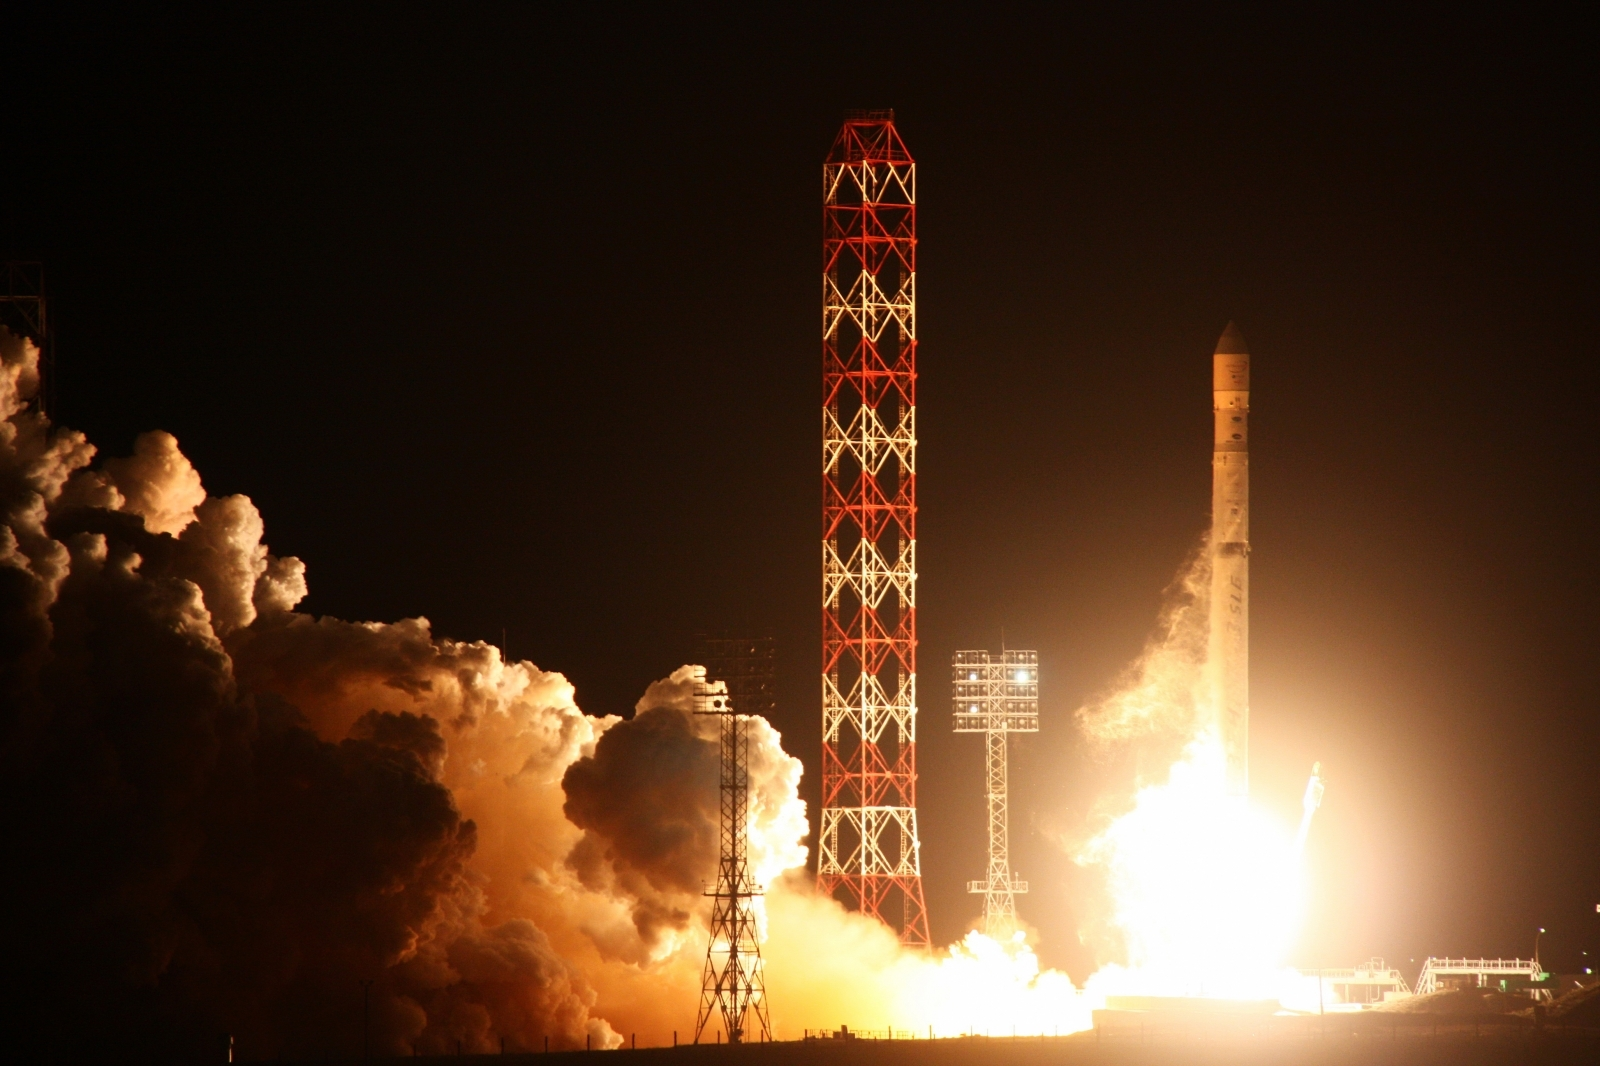 Angola's First Satellite Launched From Baikonur Spaceport